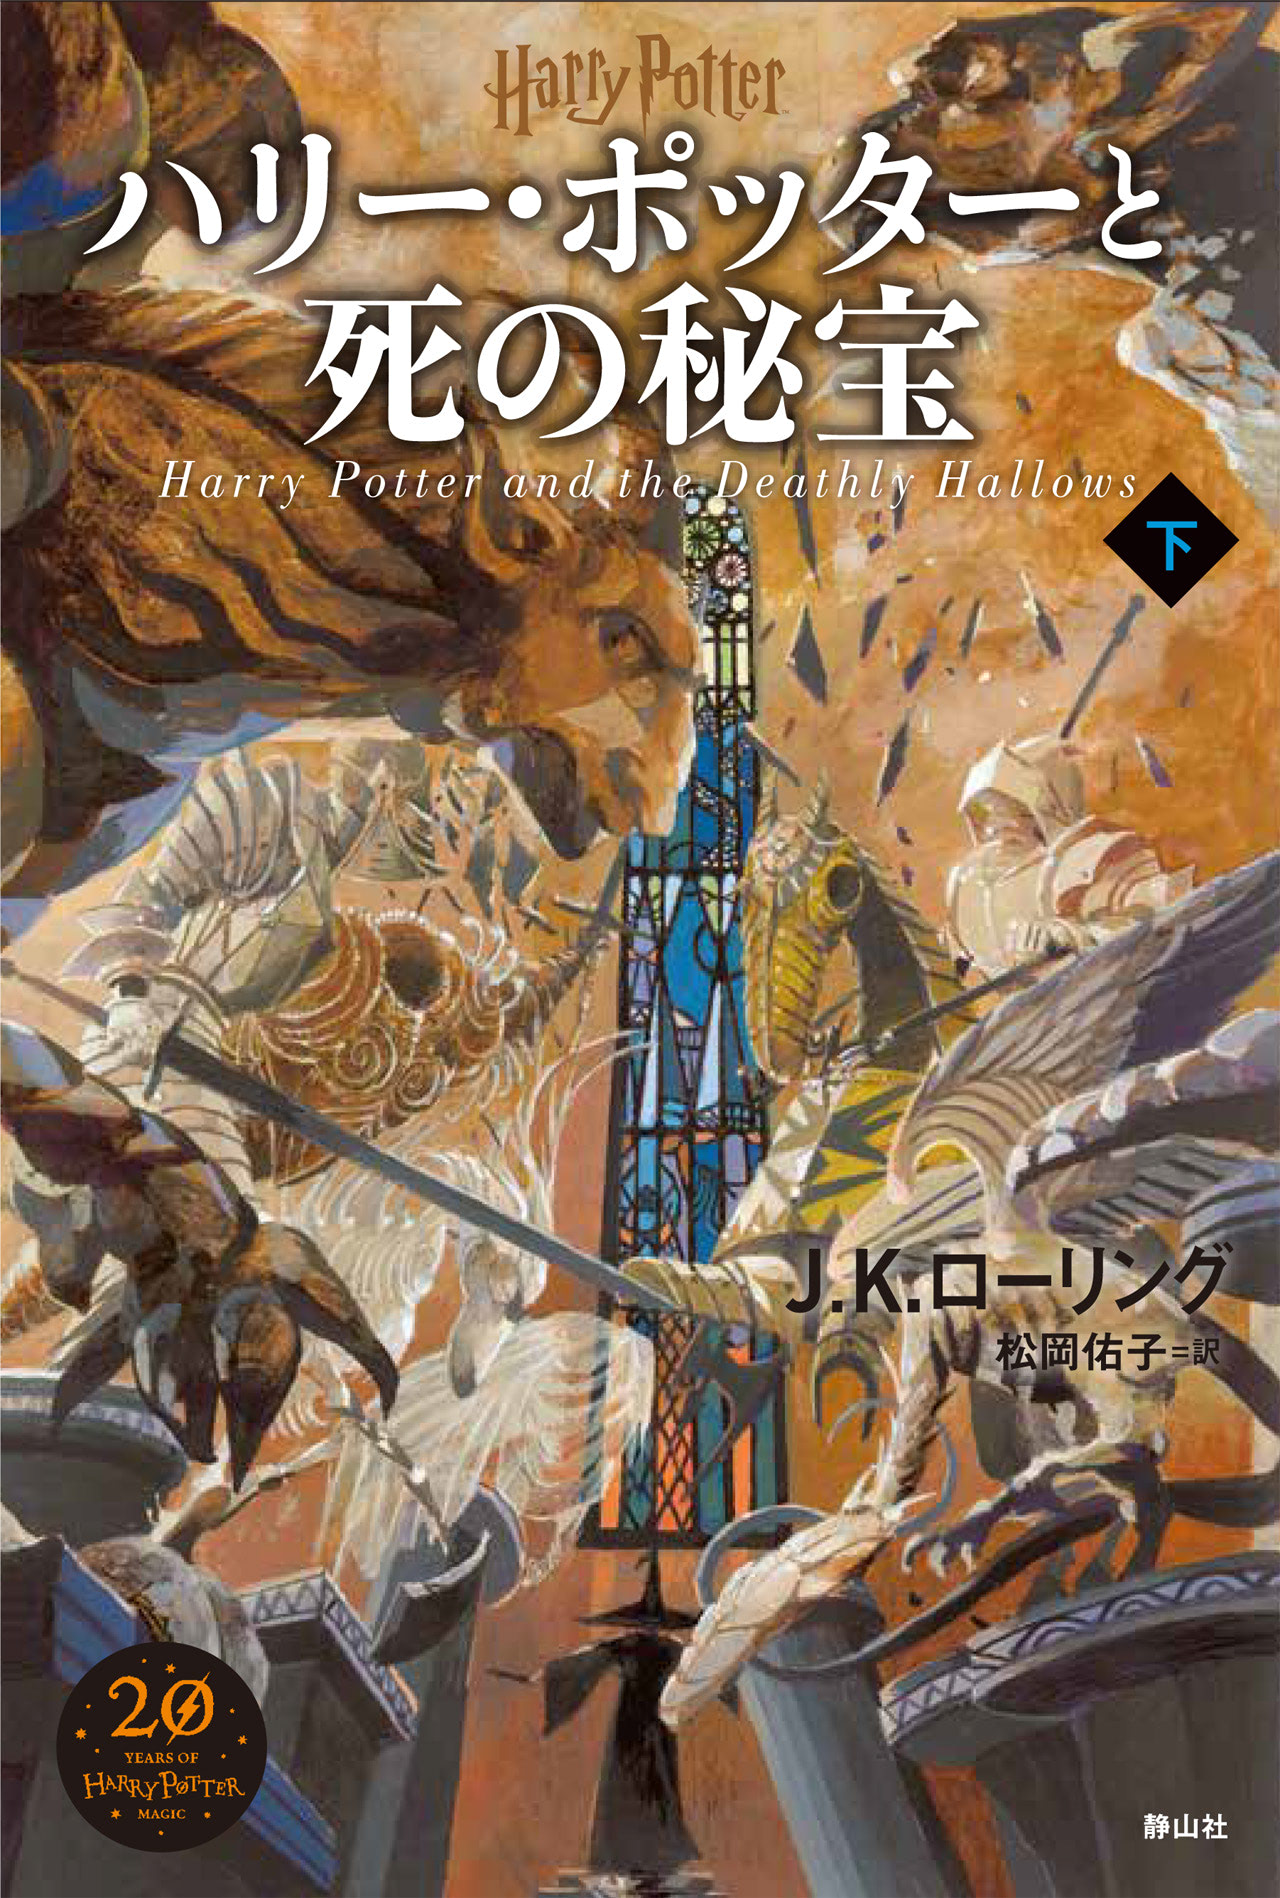 'Deathly Hallows' Japanese 20th anniversary edition (volume 2)